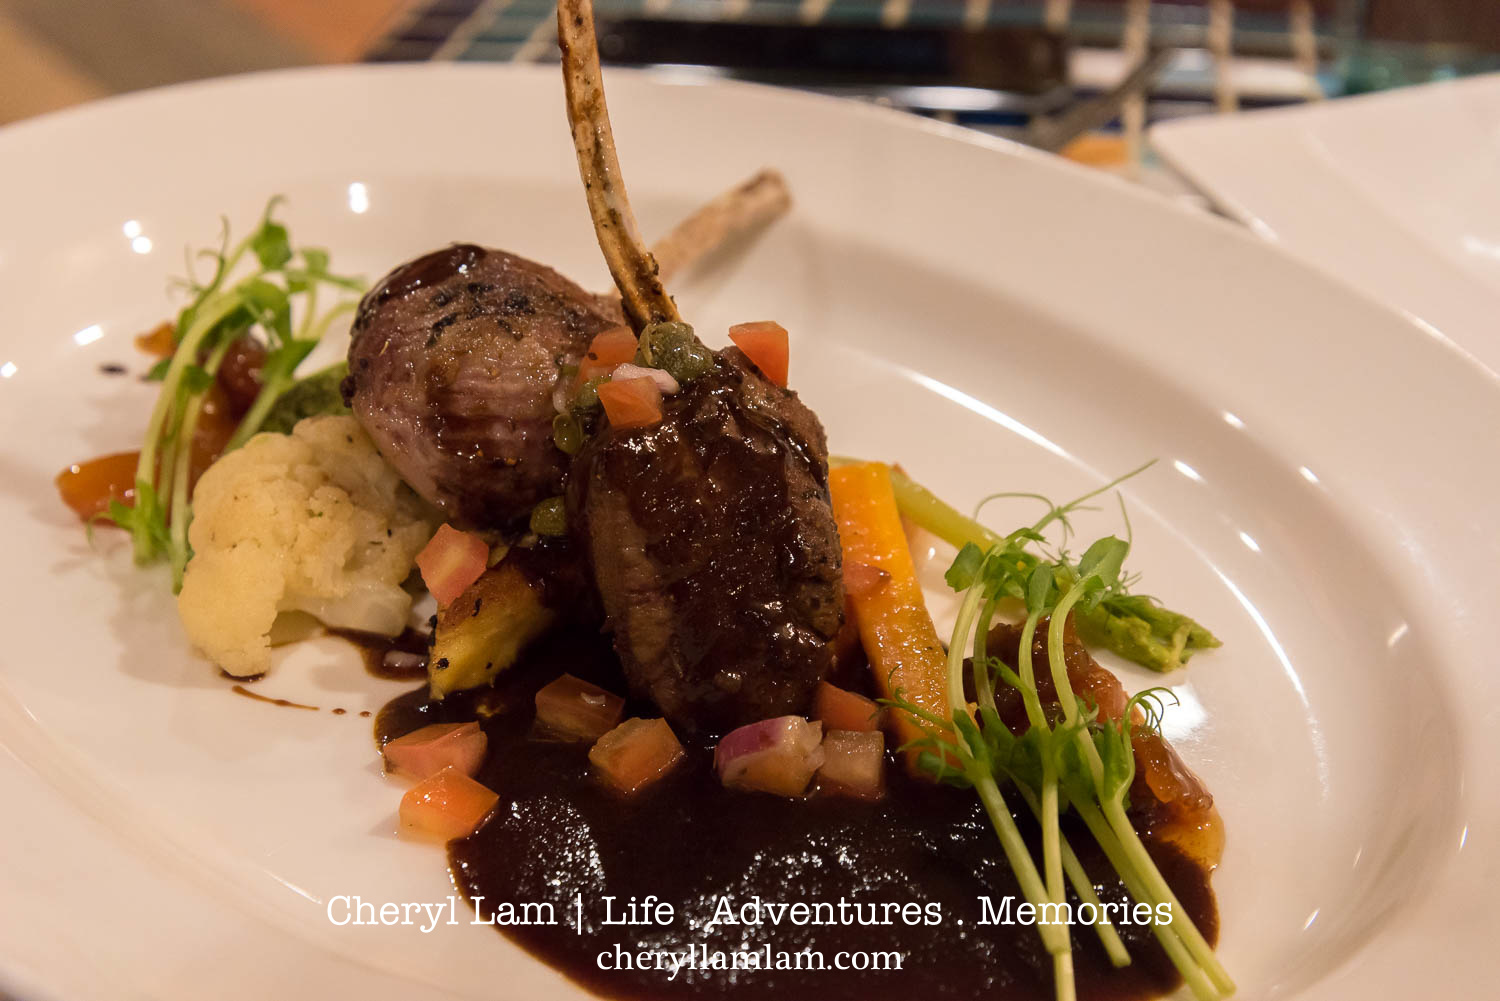 Mek Mek Mek - Australian lamb rack, Rosemary Polenta cake, Glazed market vegetables and Miso jus